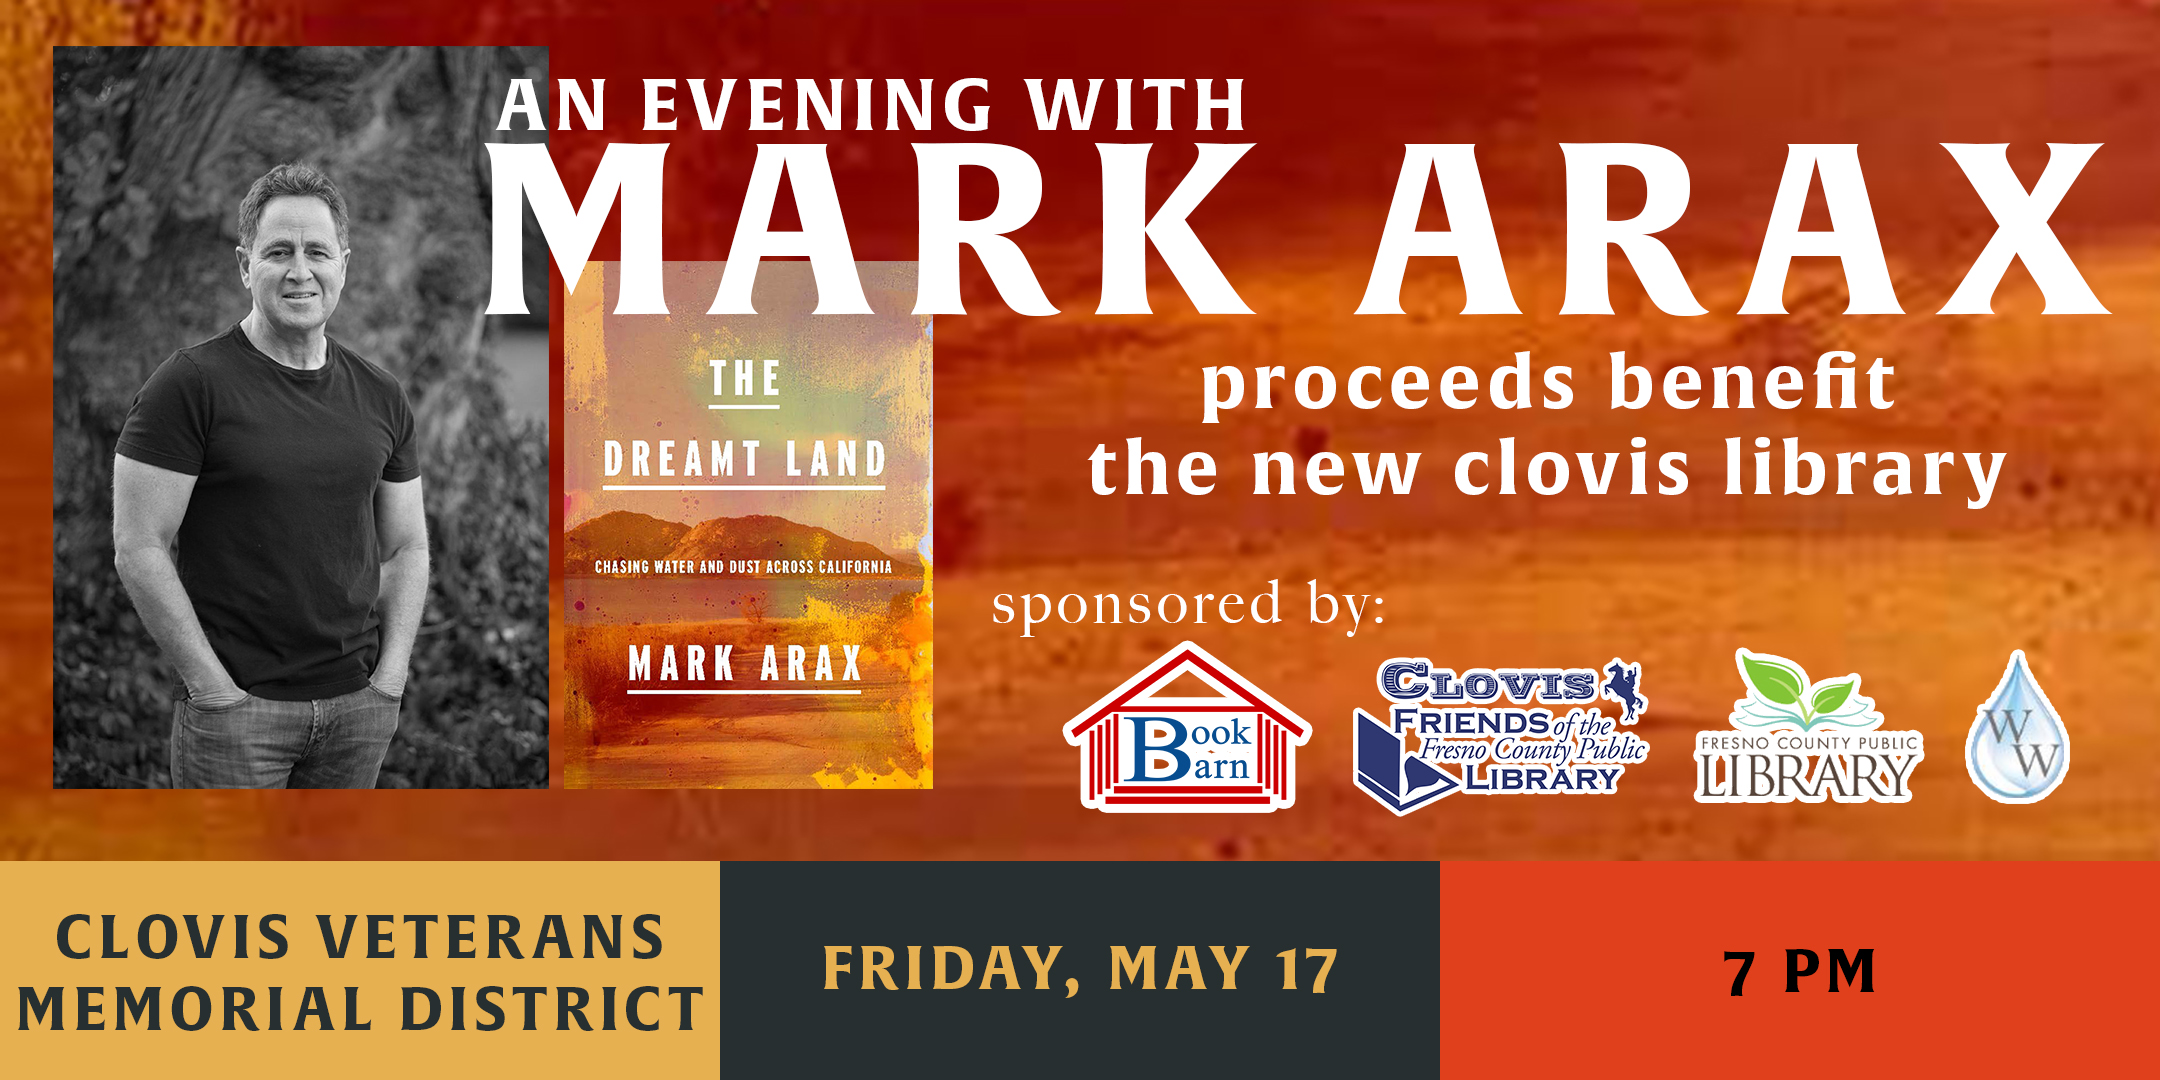 An Evening with Mark Arax